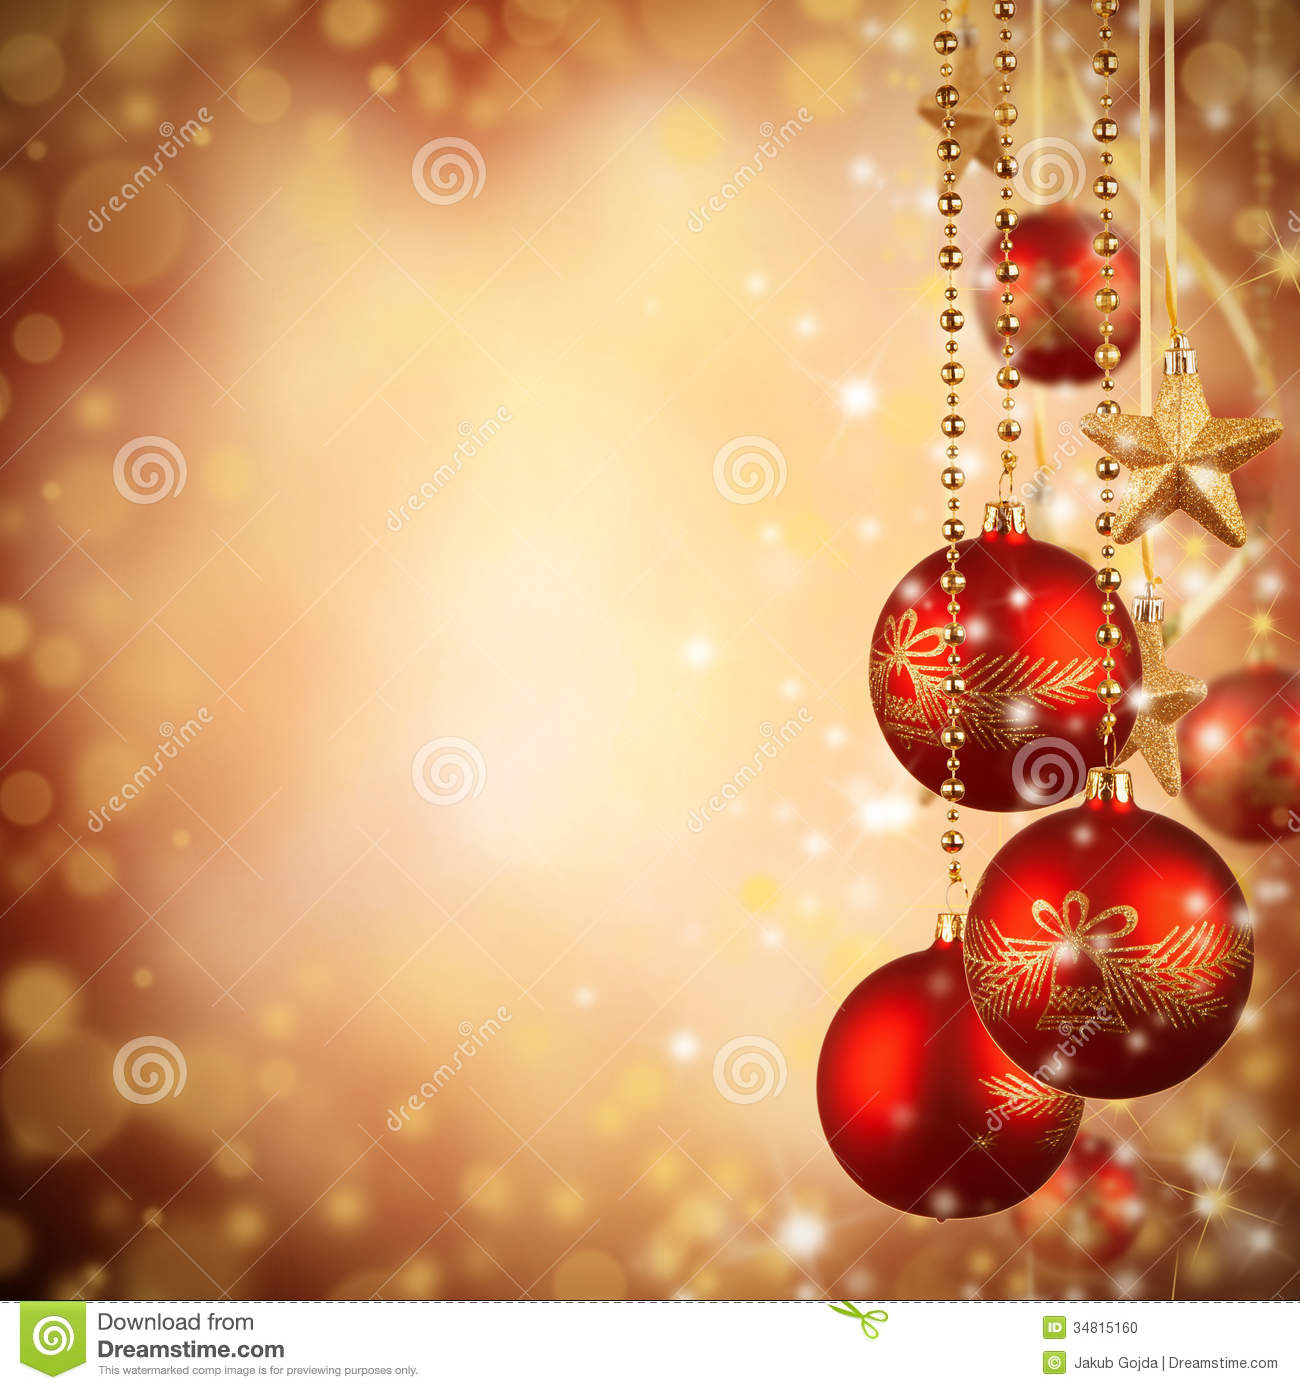 Christmas background stock photo image 34815160 for Background decoration